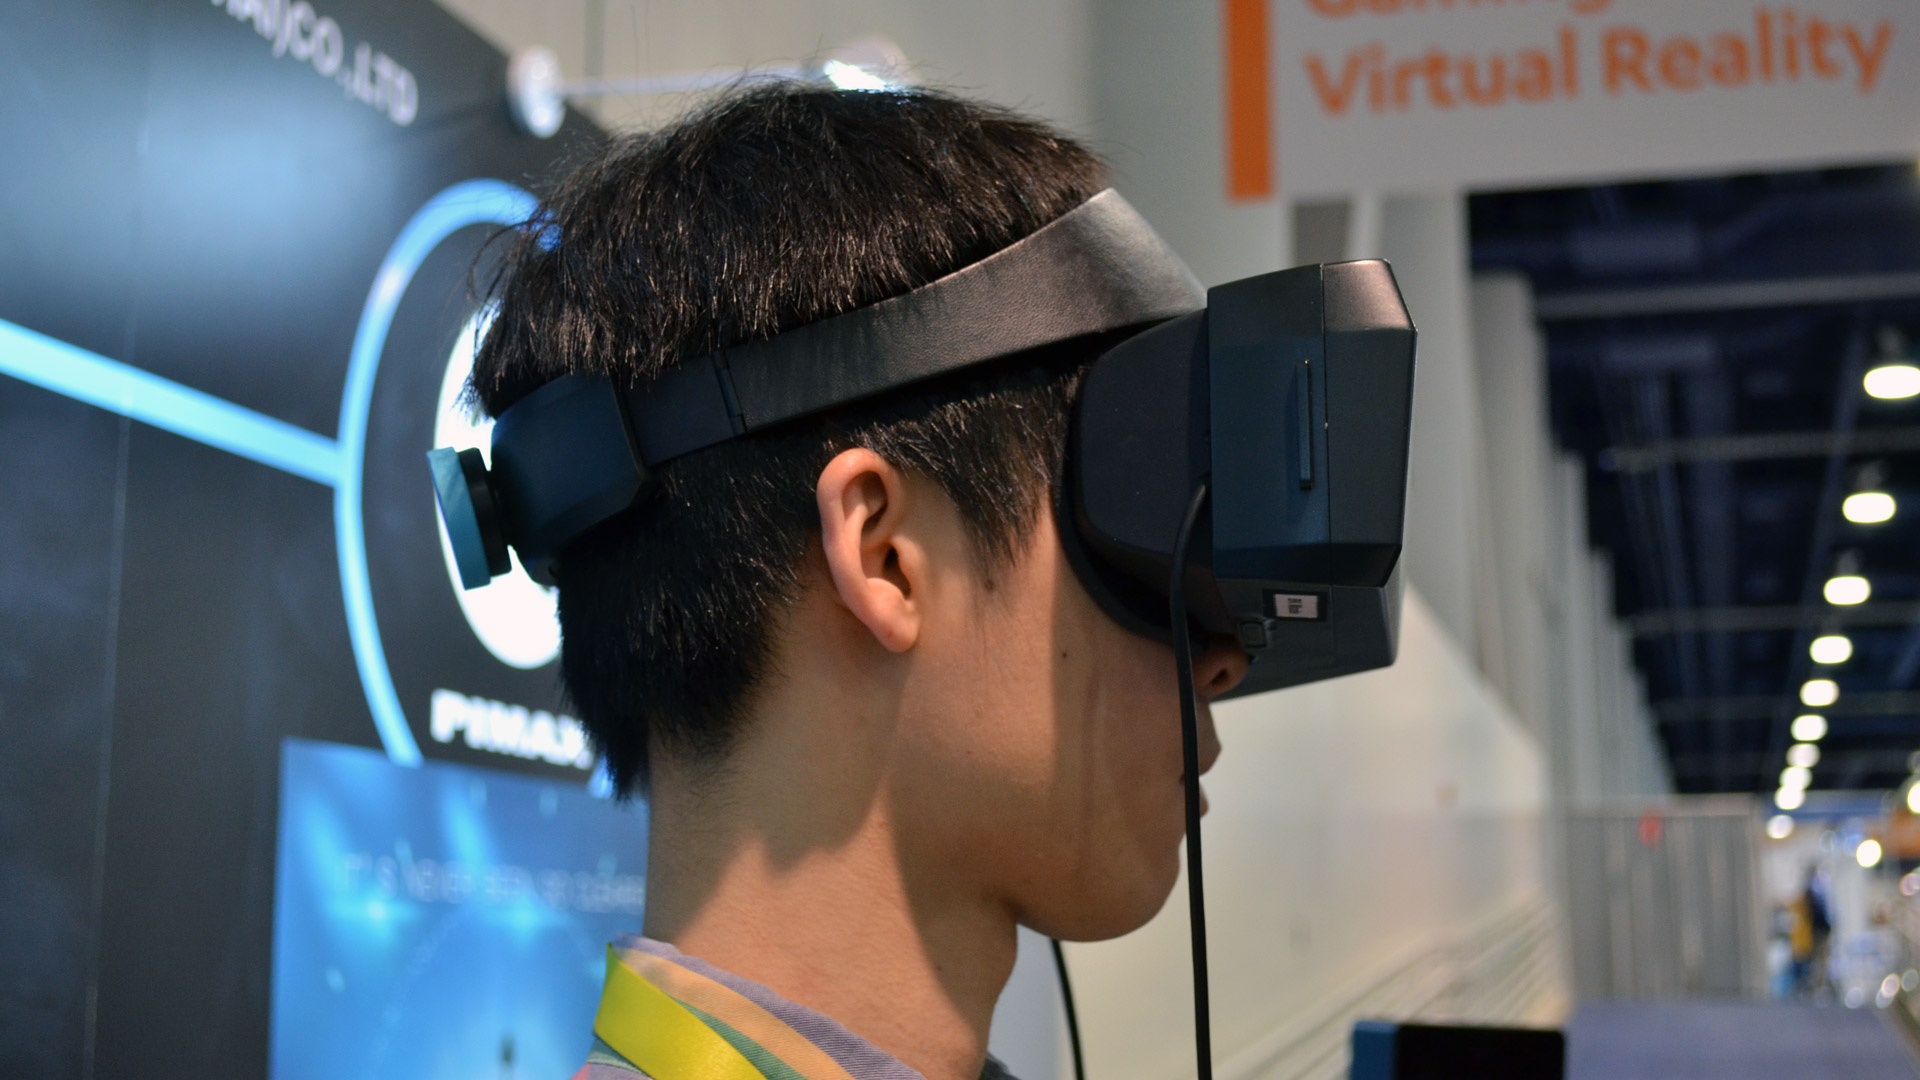 Hands on: PiMAX's 8K Headset Proves that High FOV VR is